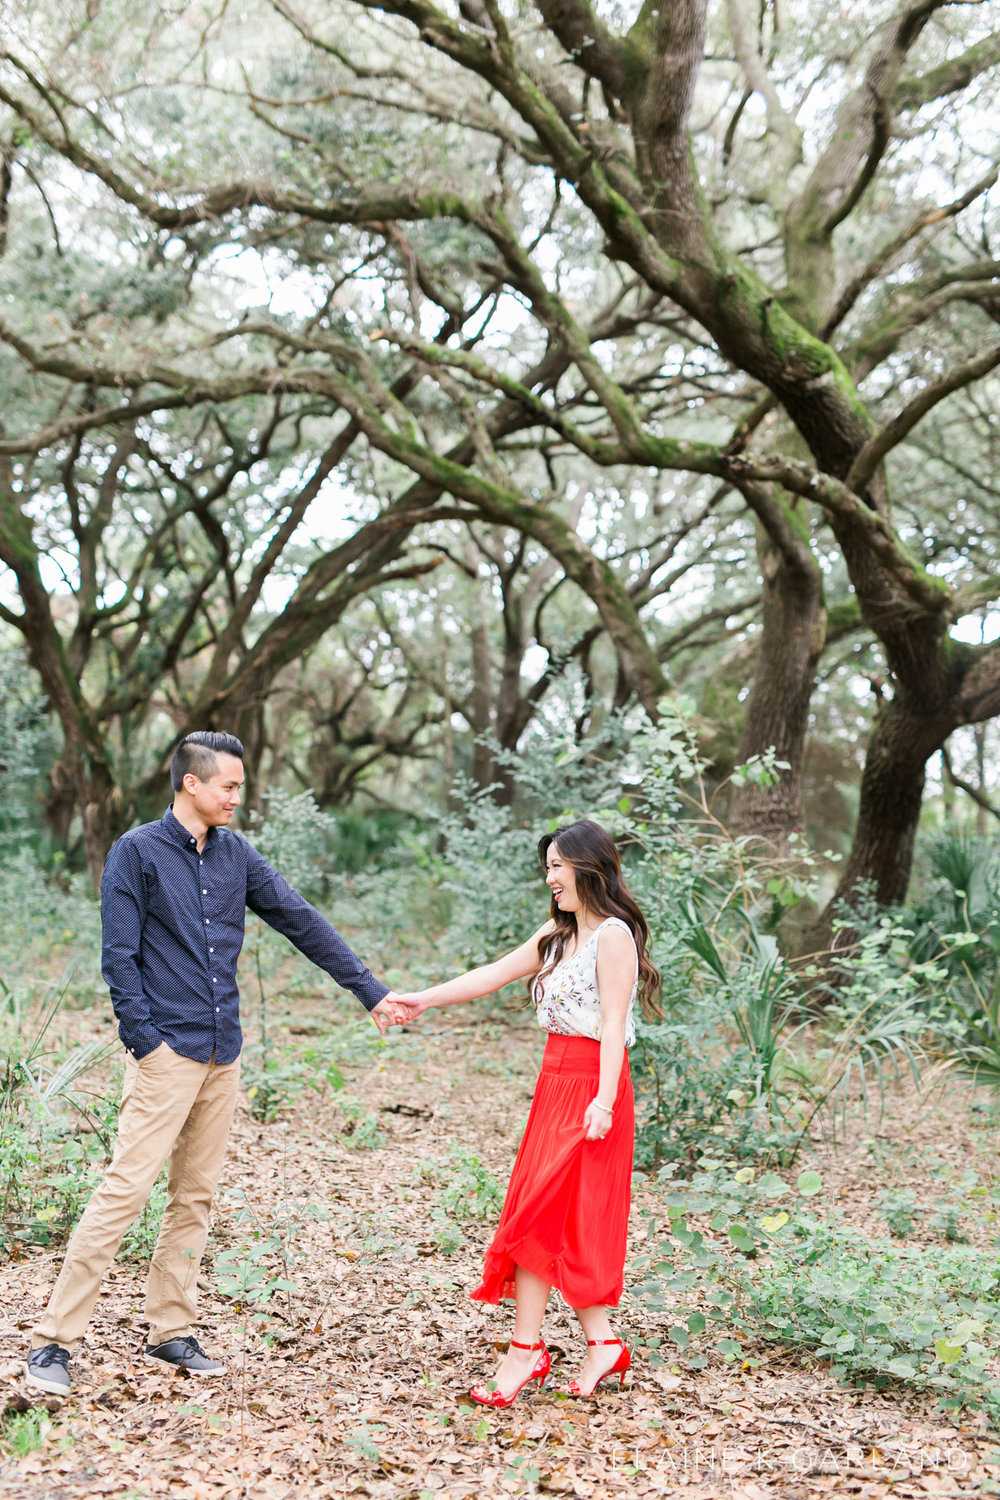 choosing-a-location-for-your-engagment-session-1.jpg